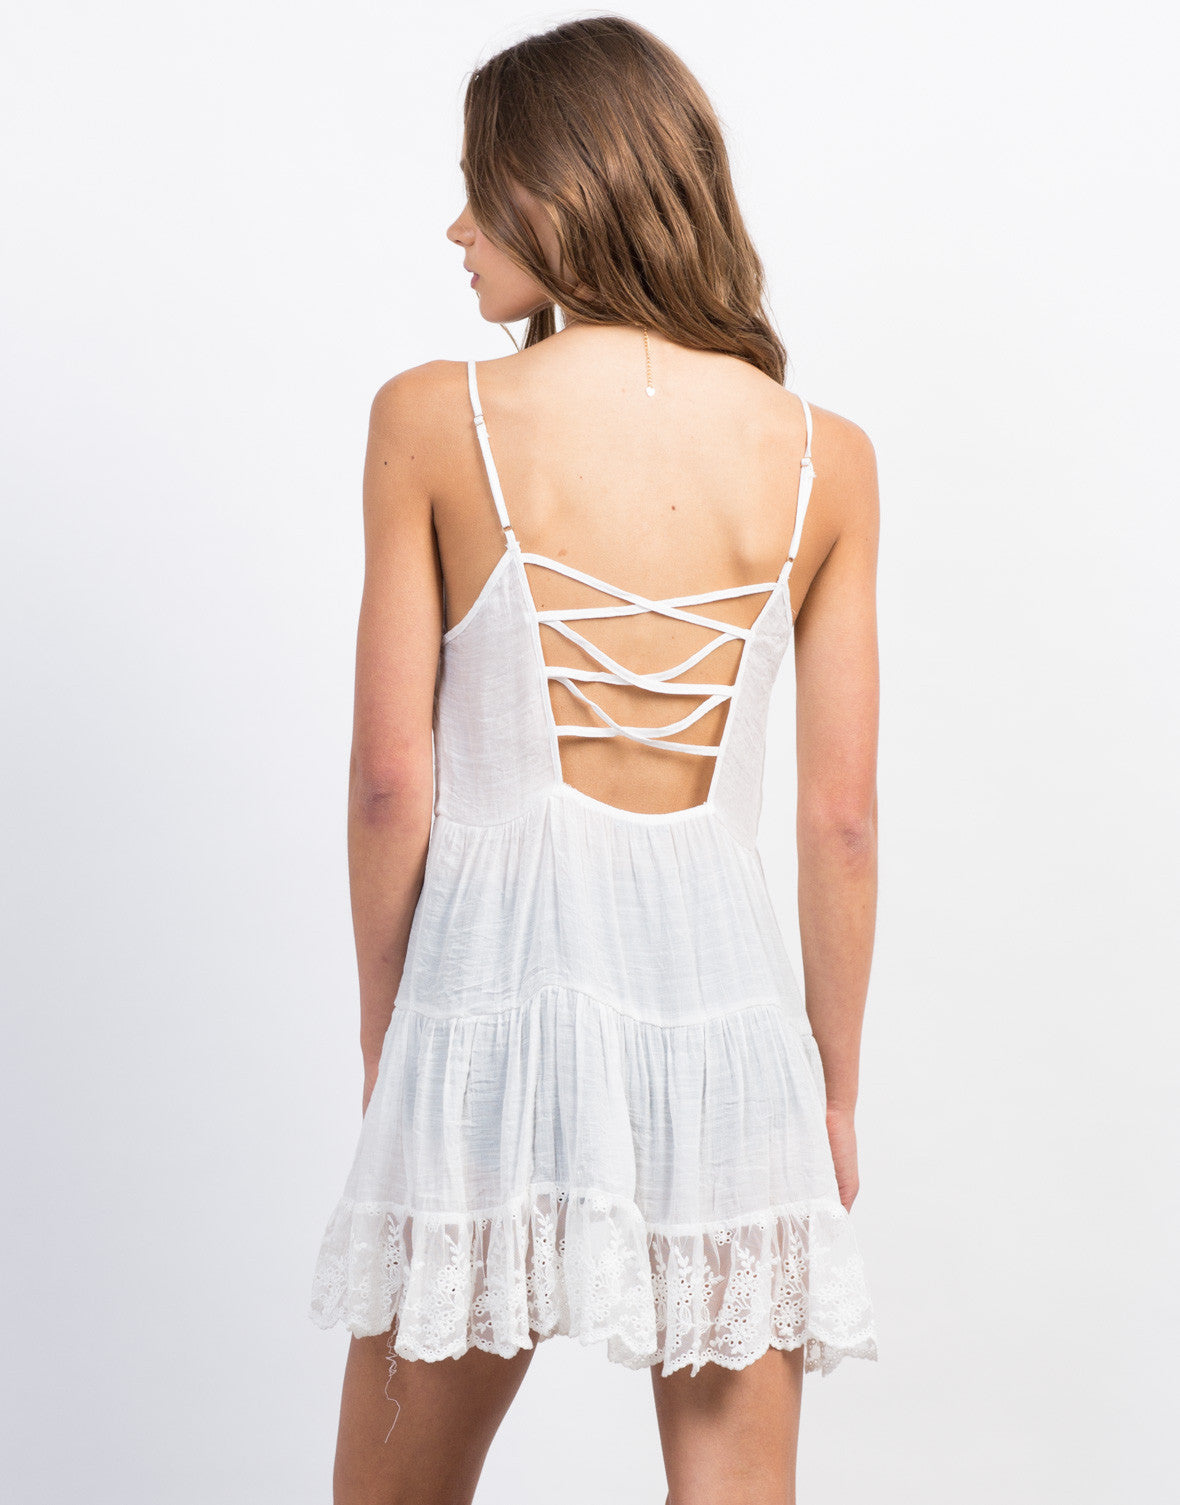 Back View of Lace Trim Babydoll Dress